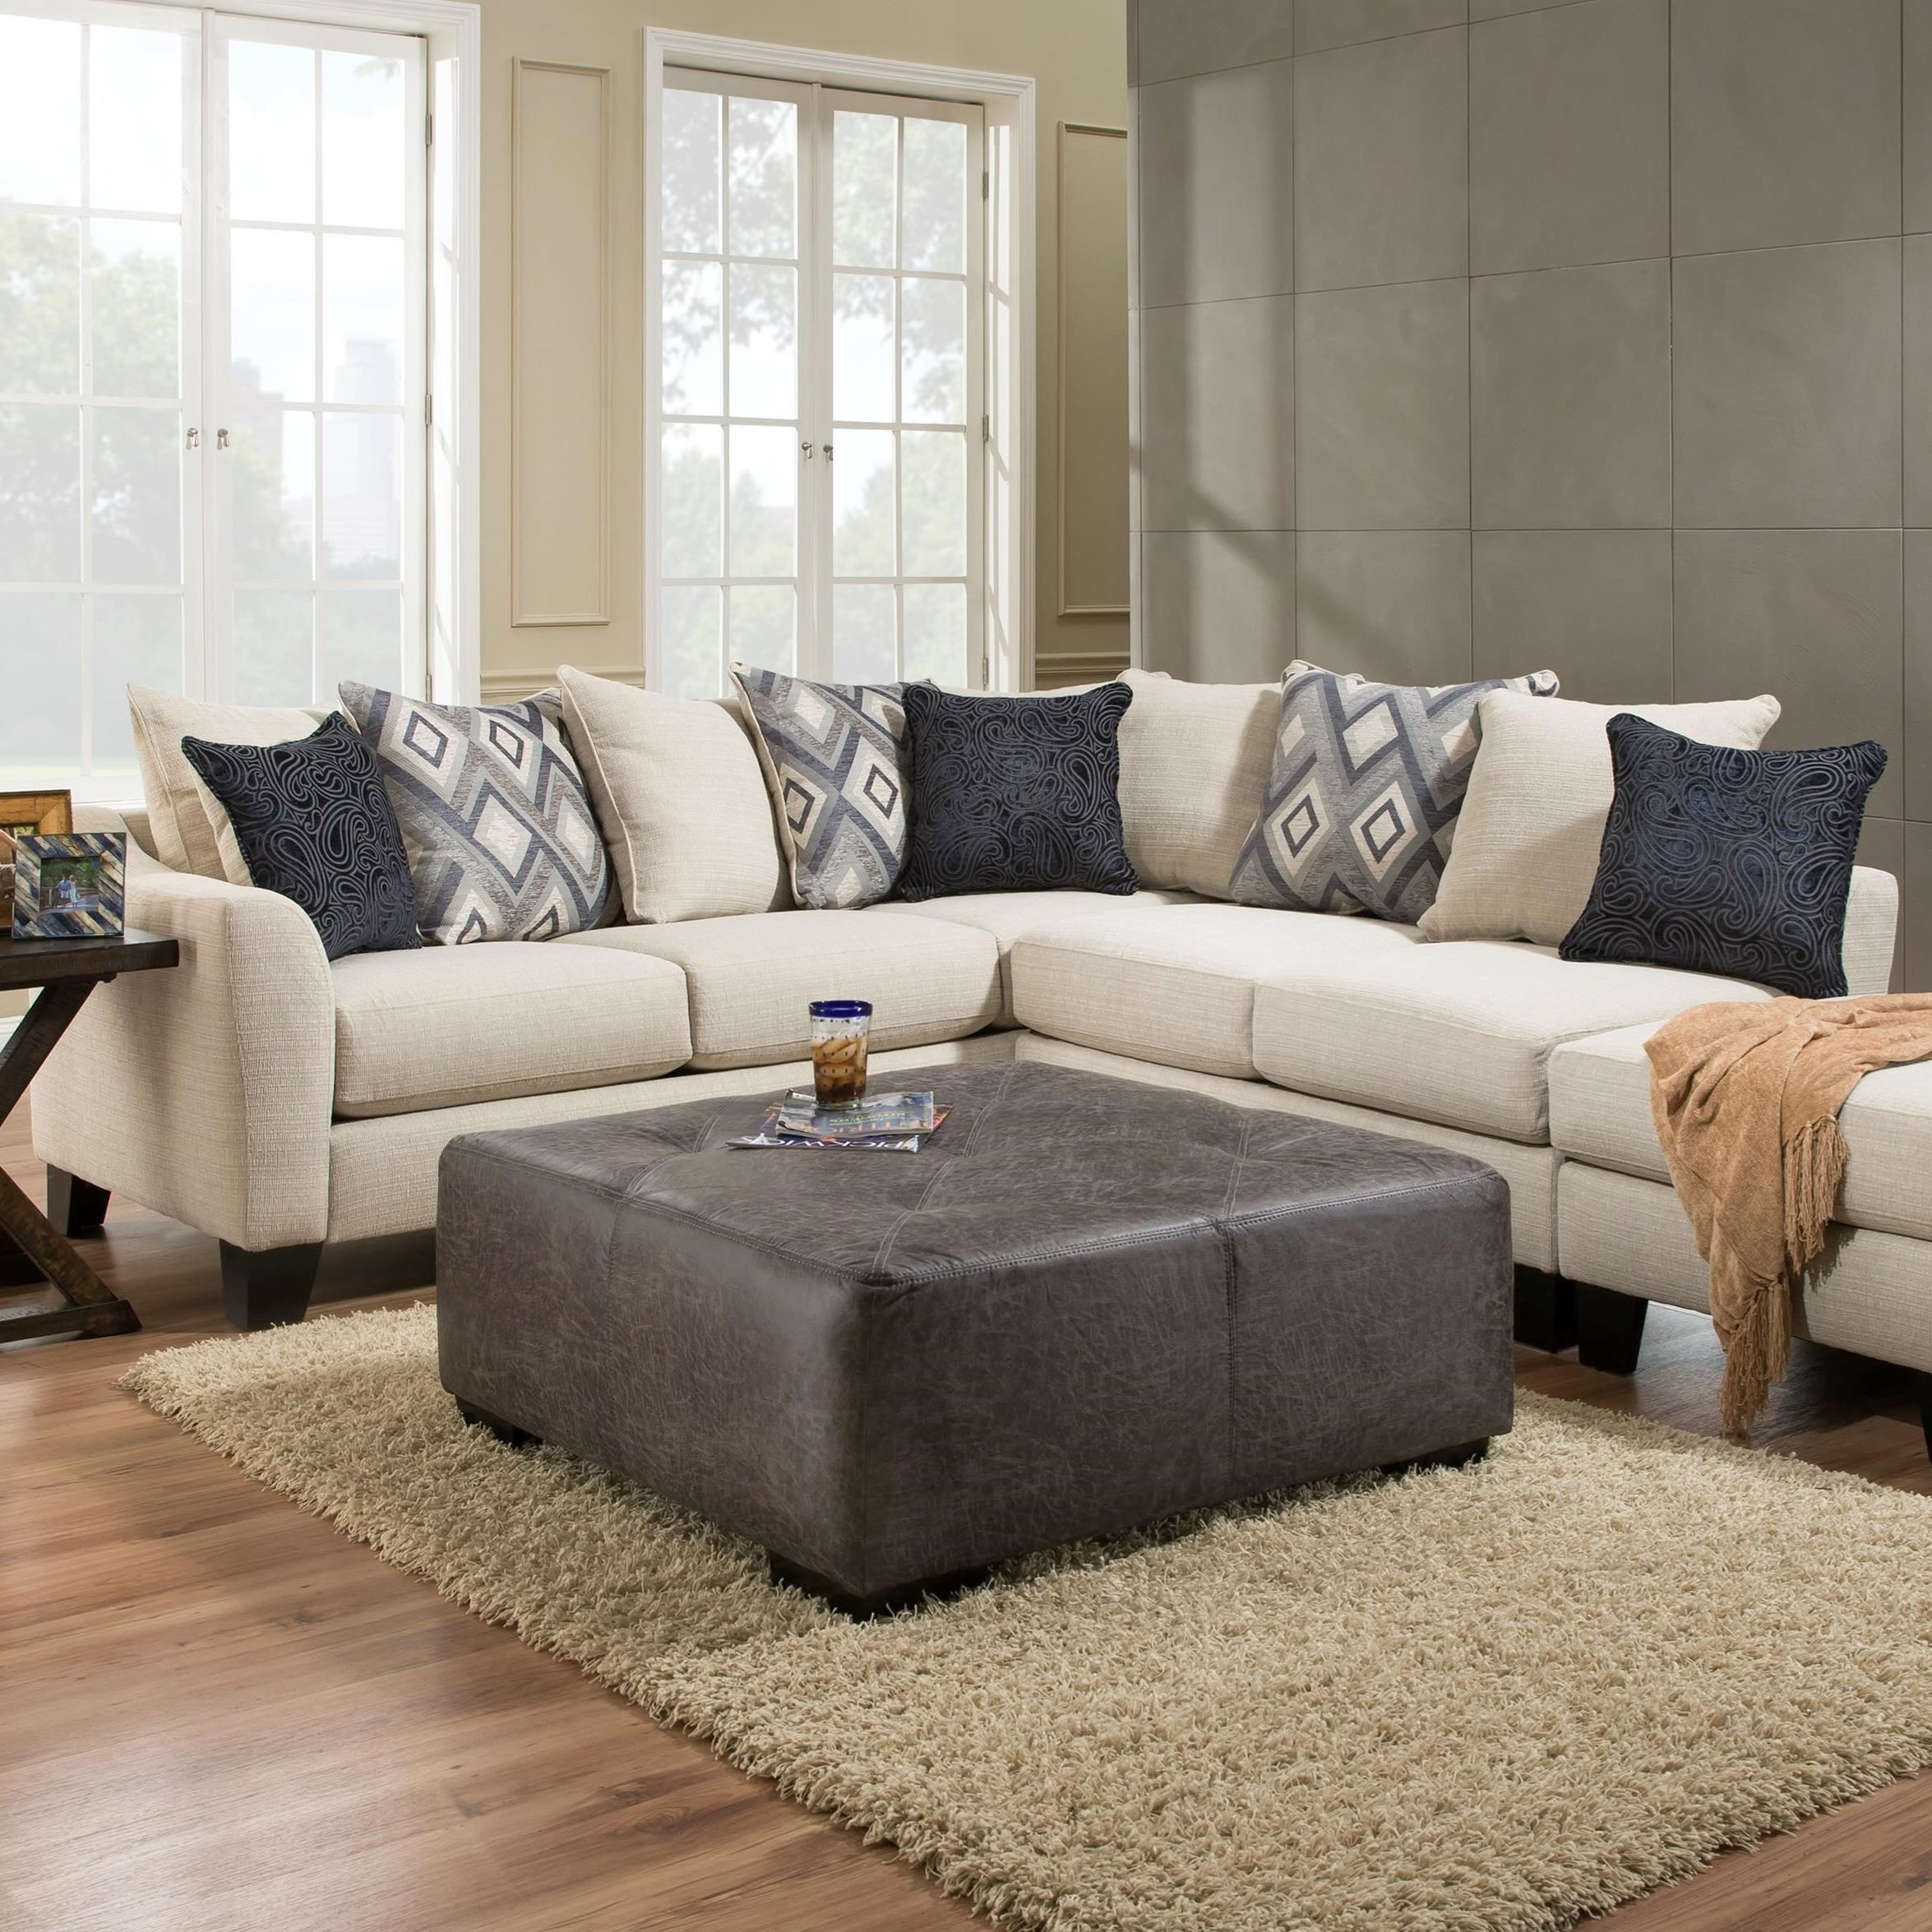 Sectional Sofas For Albany 759 Piece Sectional Sofa In Dynasty Cream Fabric Miskelly